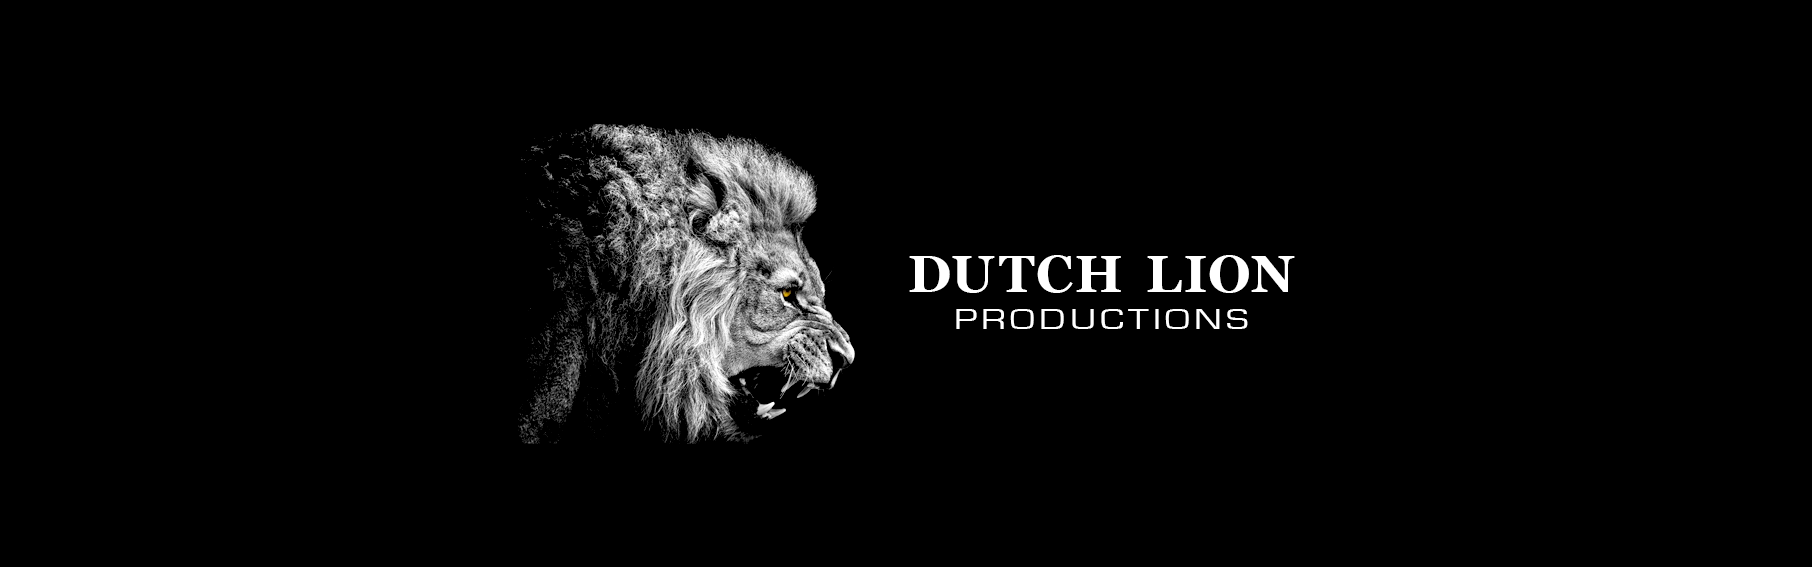 Dutch Lion Productions Logo